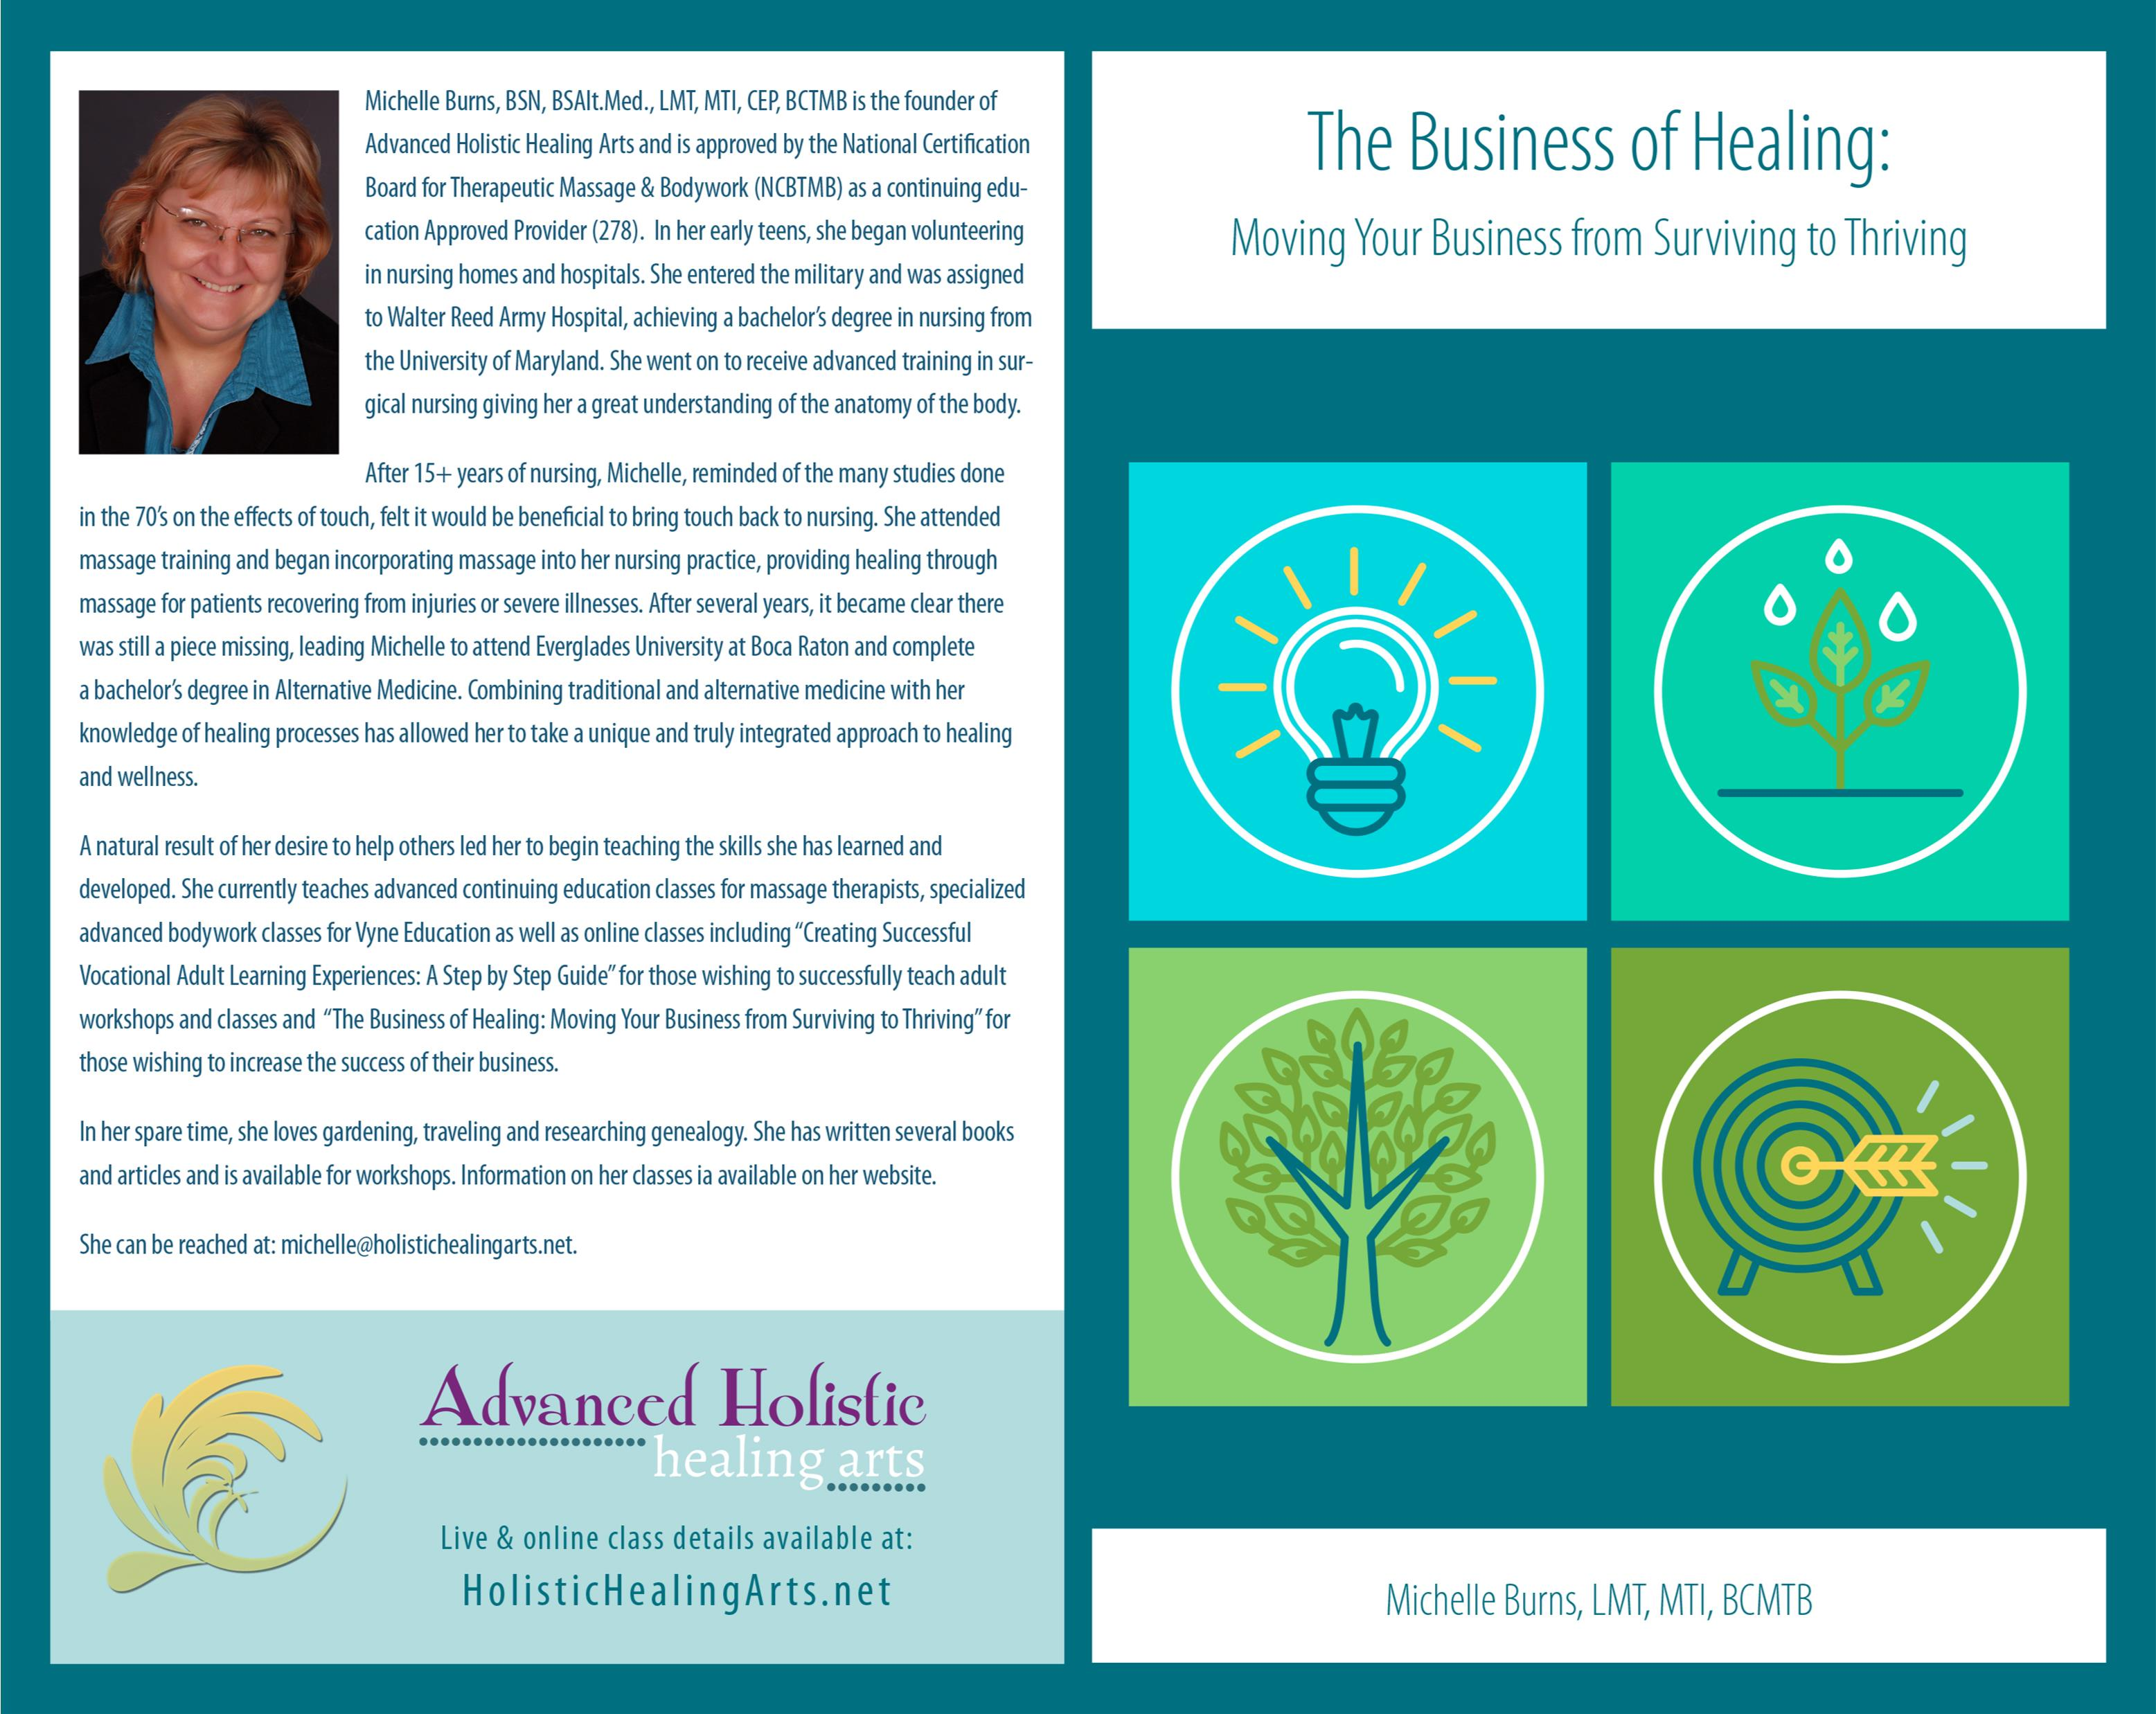 The Business of Healing: Taking Your Business from Surviving to Thriving cover image